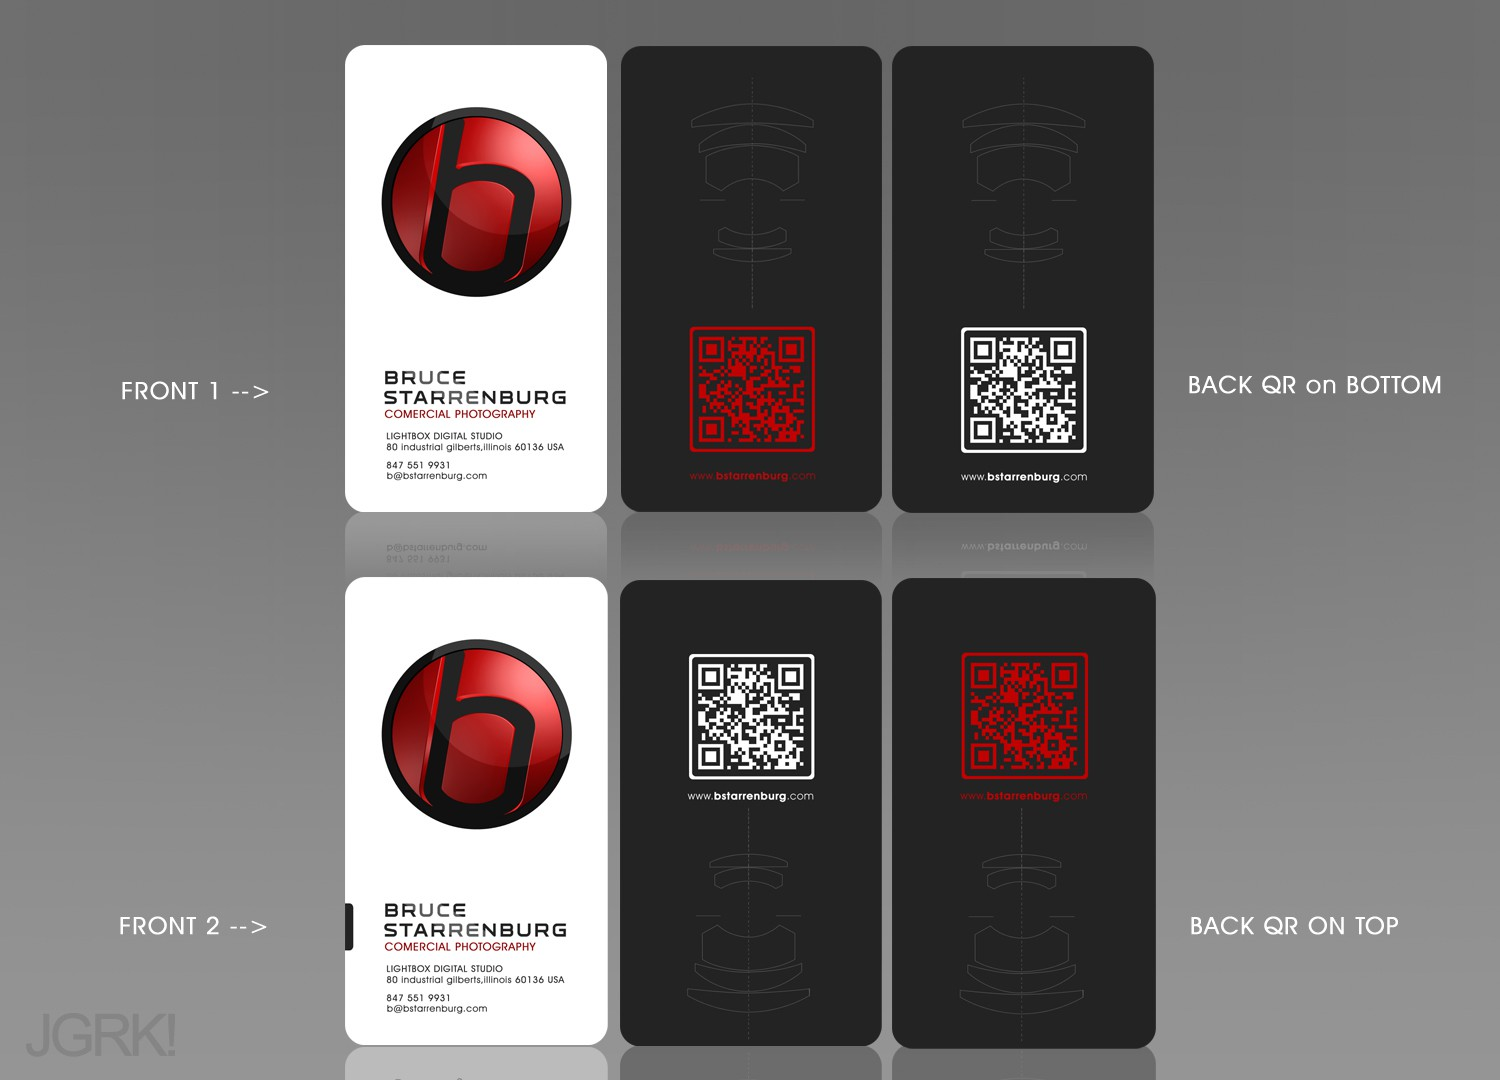 Help Commercial Photography Studio with a new Bizcard/Letterhead  design